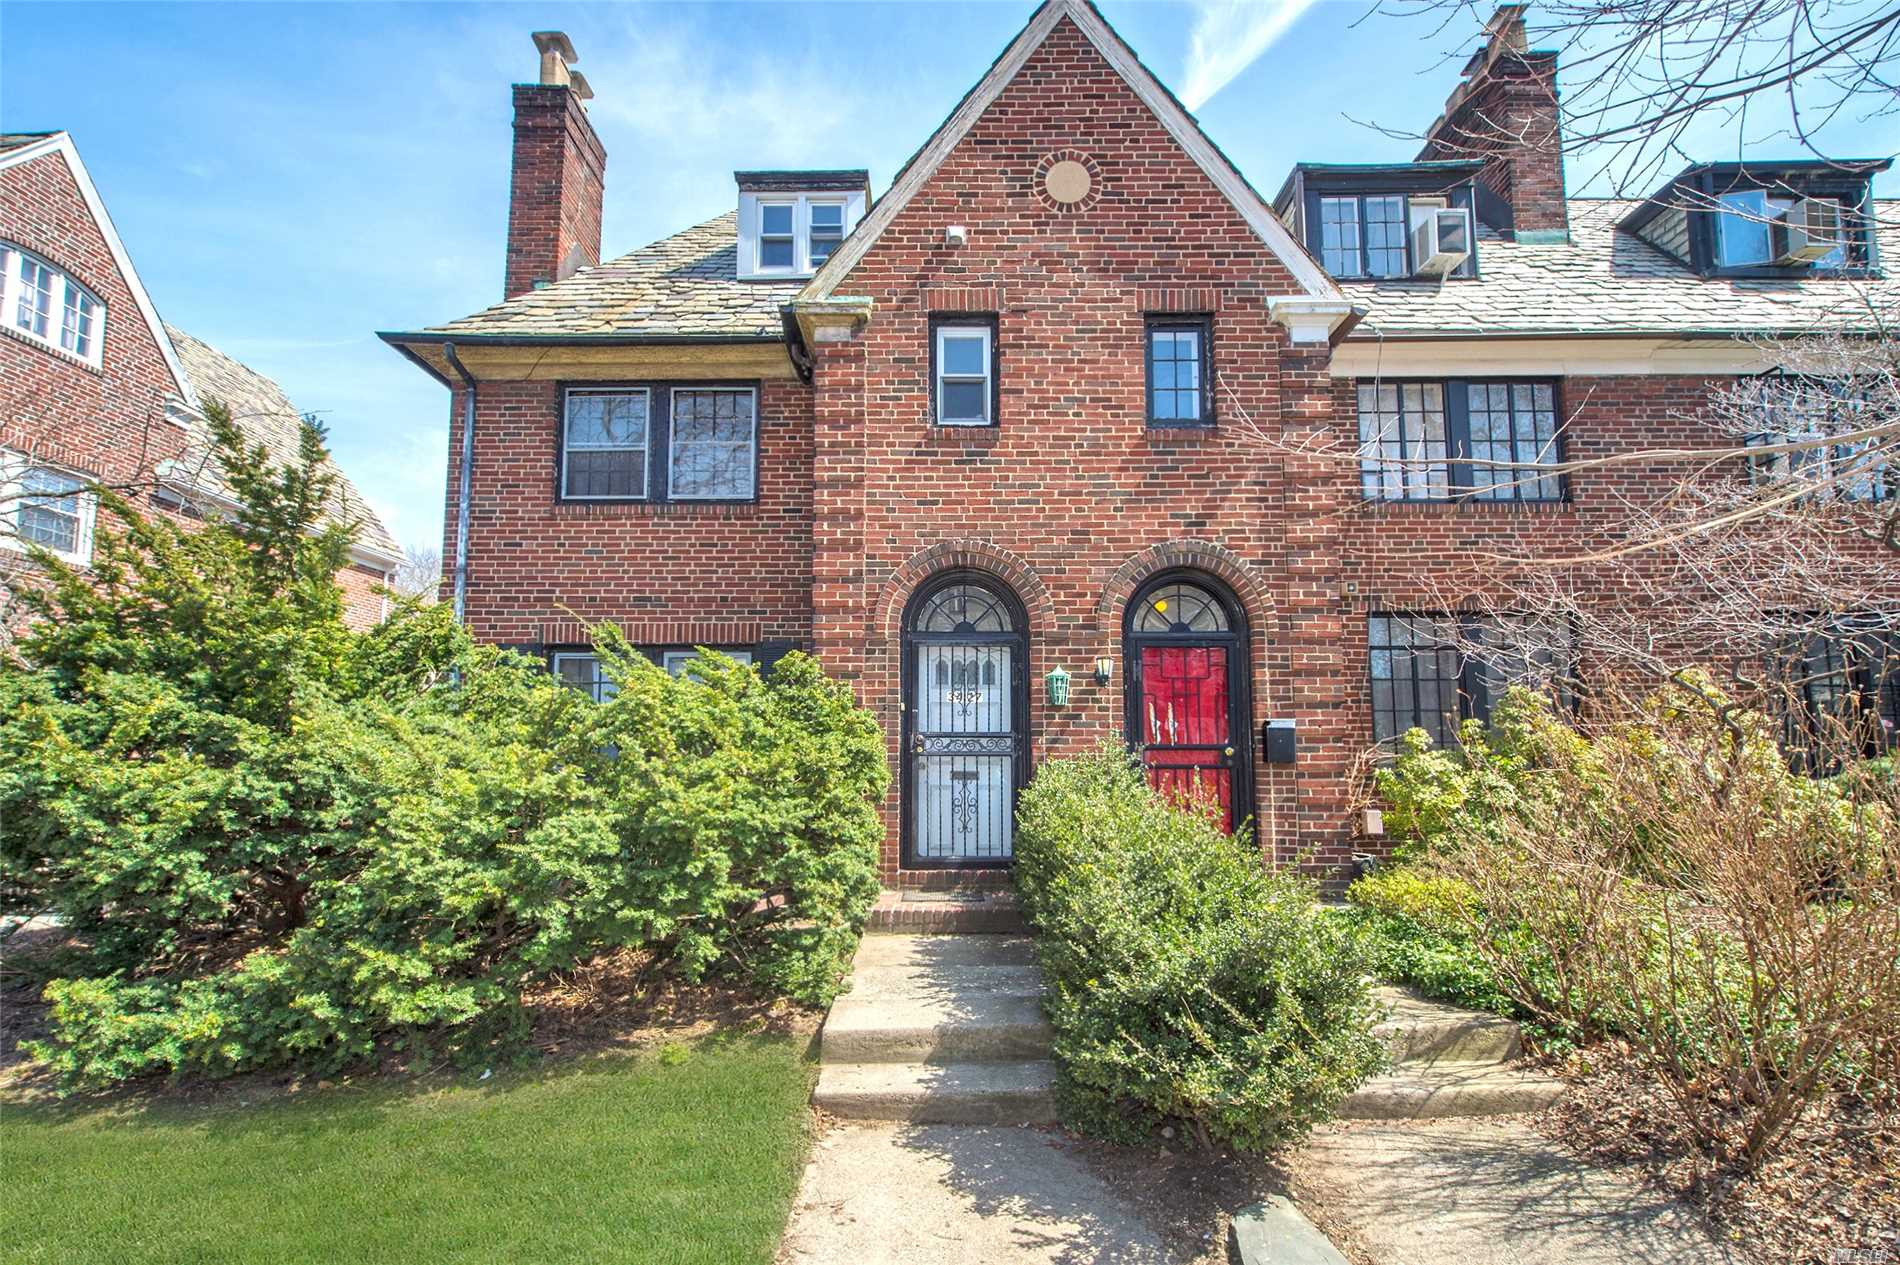 Beautiful English Garden House located in the coveted historic district of Jackson Heights. House is situated on a large 32?100 lot on a tree lined block. This house features 5 bedrooms along with 3 full bathrooms. Rare opportunity to own this Semi-Detached Gem!